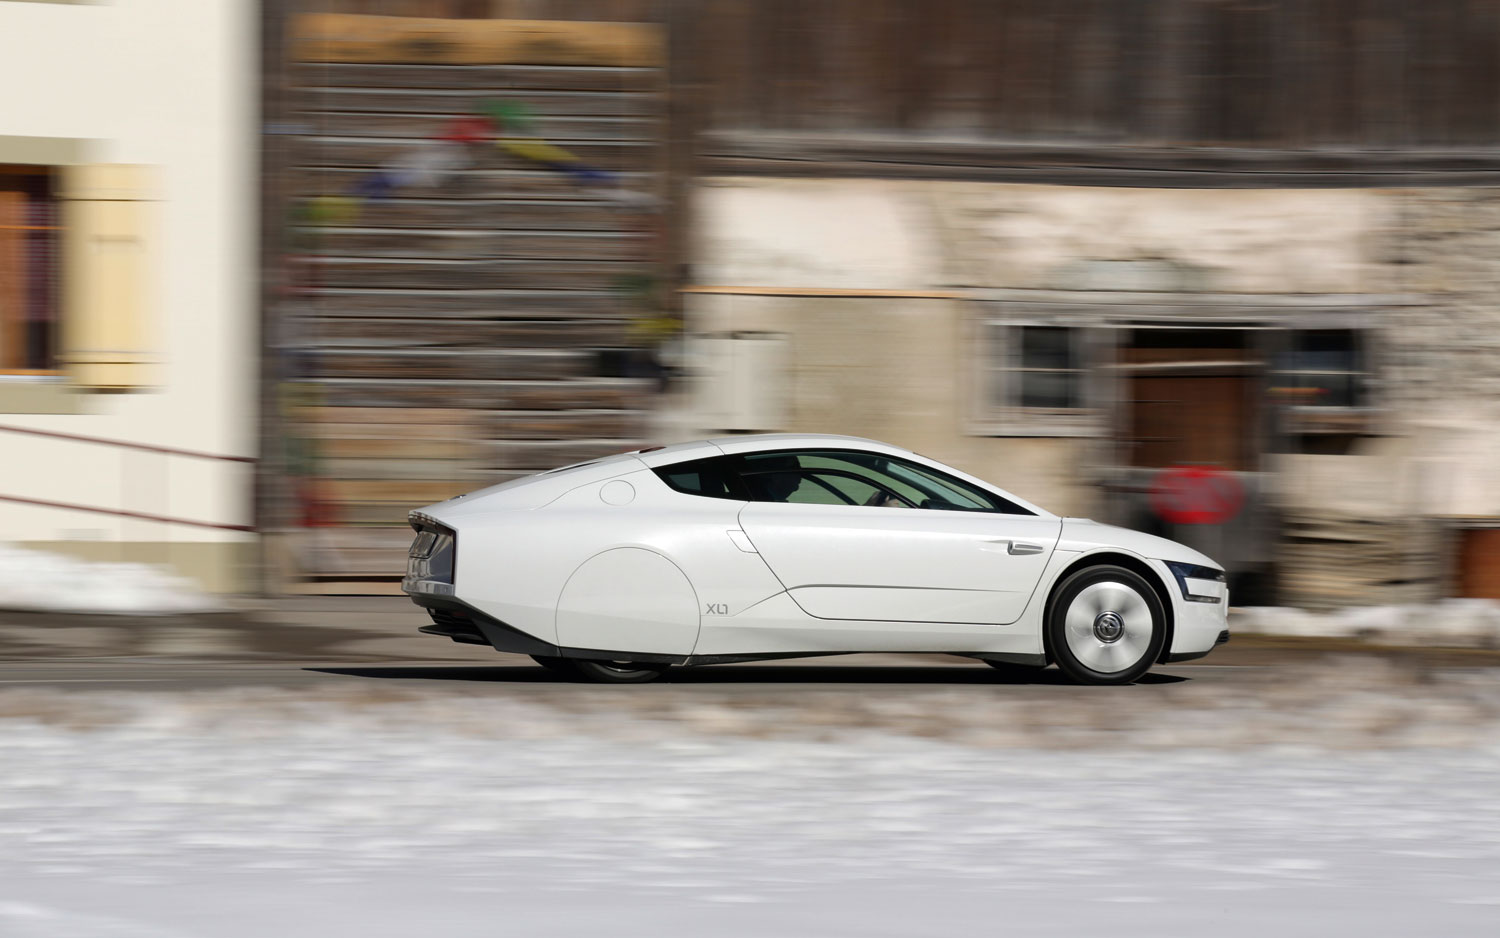 2014 Volkswagen XL1 Right Side View 21